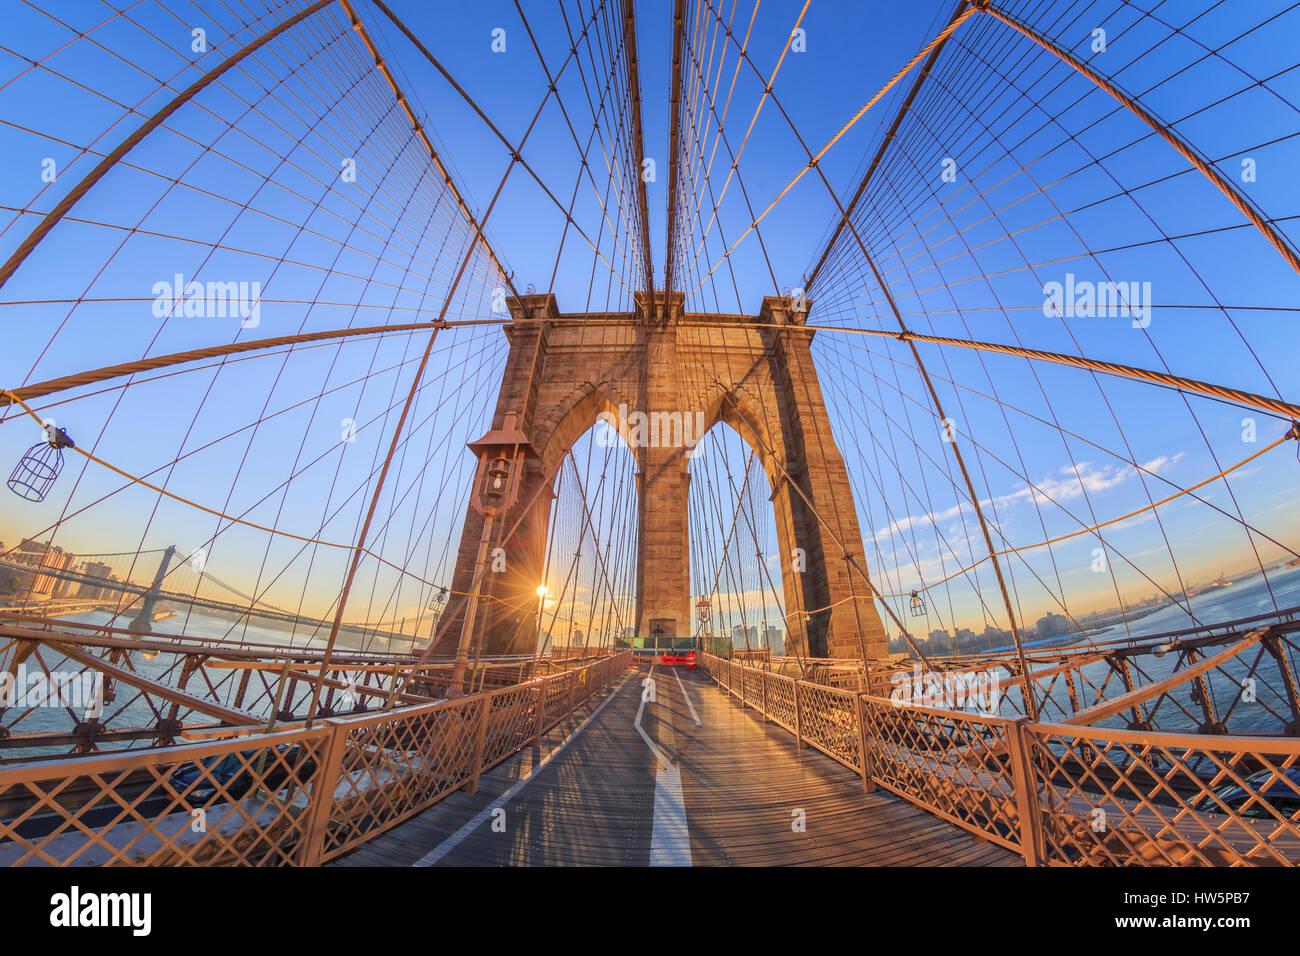 USA, New York City, Brooklyn Bridge Photo Stock